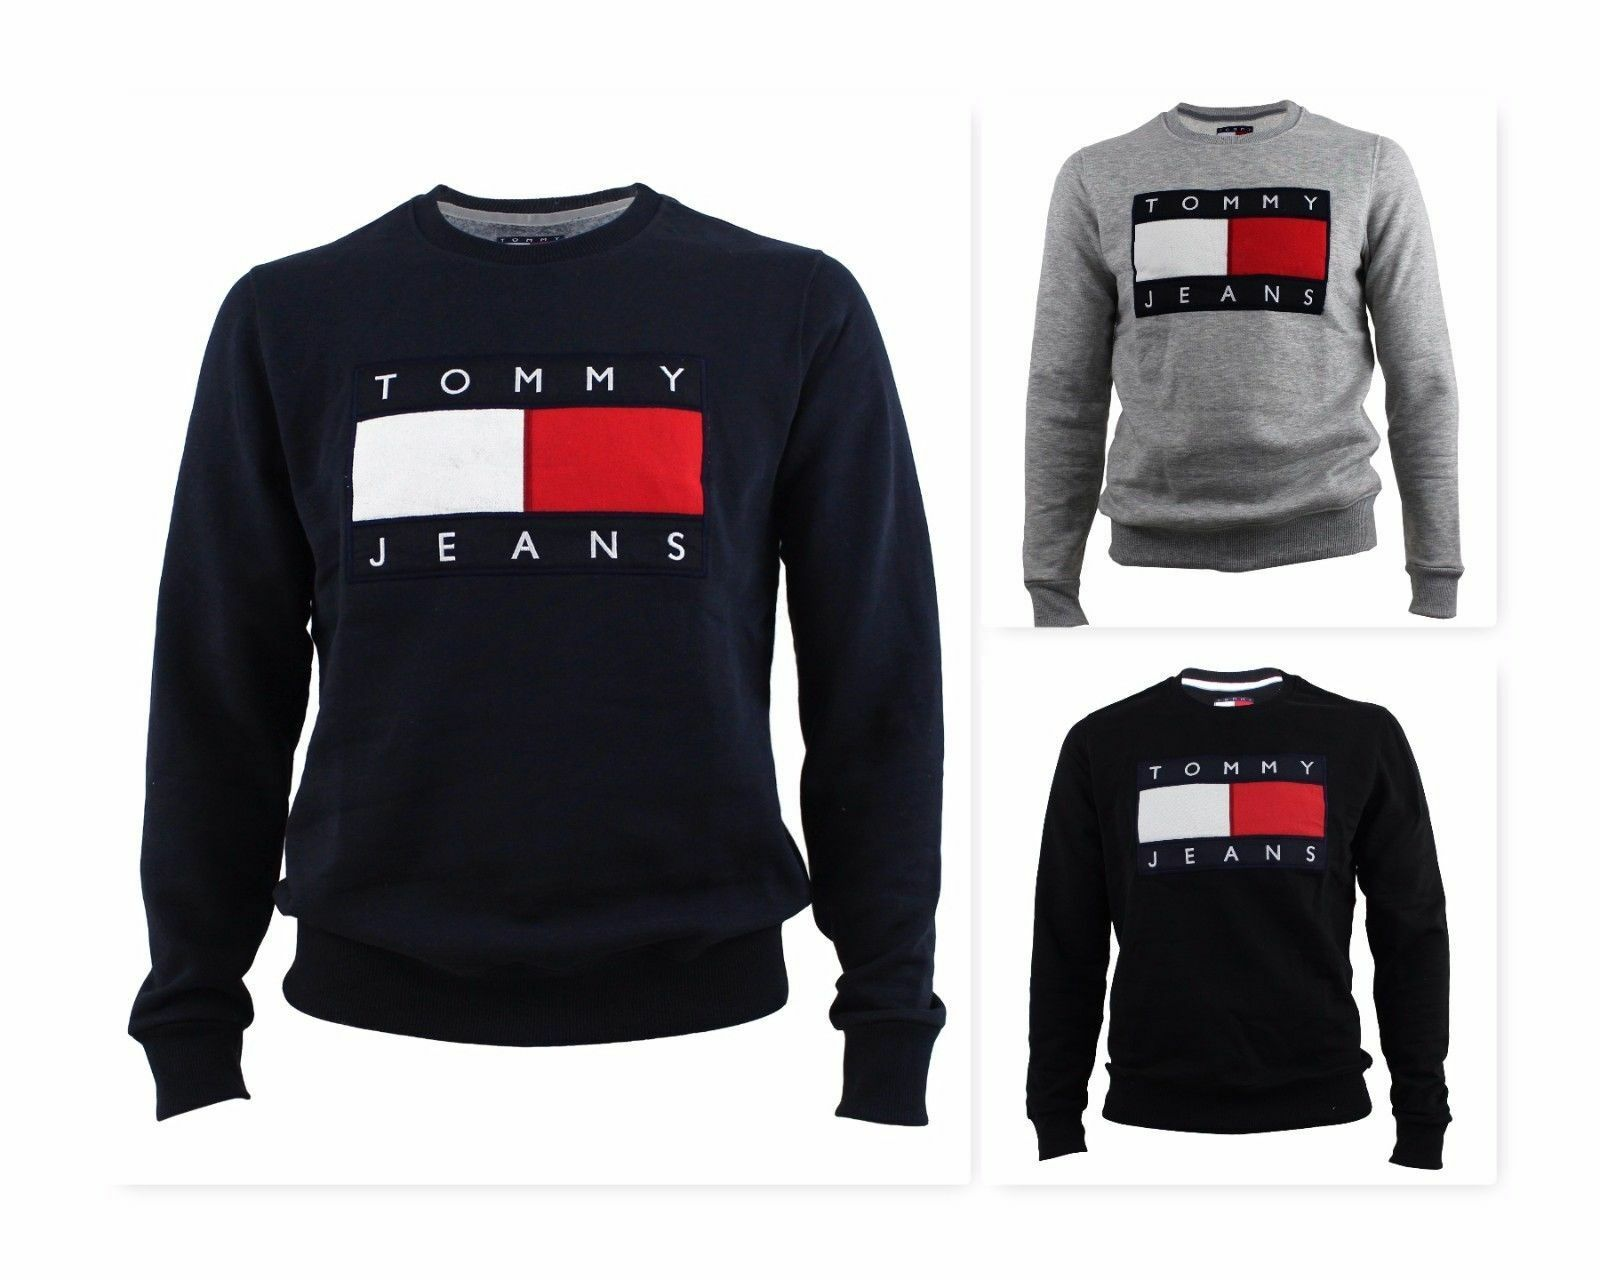 tommy hilfiger 90s jeans herren sweatshirt pullover hoodie s xxl original eur 54 99 picclick de. Black Bedroom Furniture Sets. Home Design Ideas